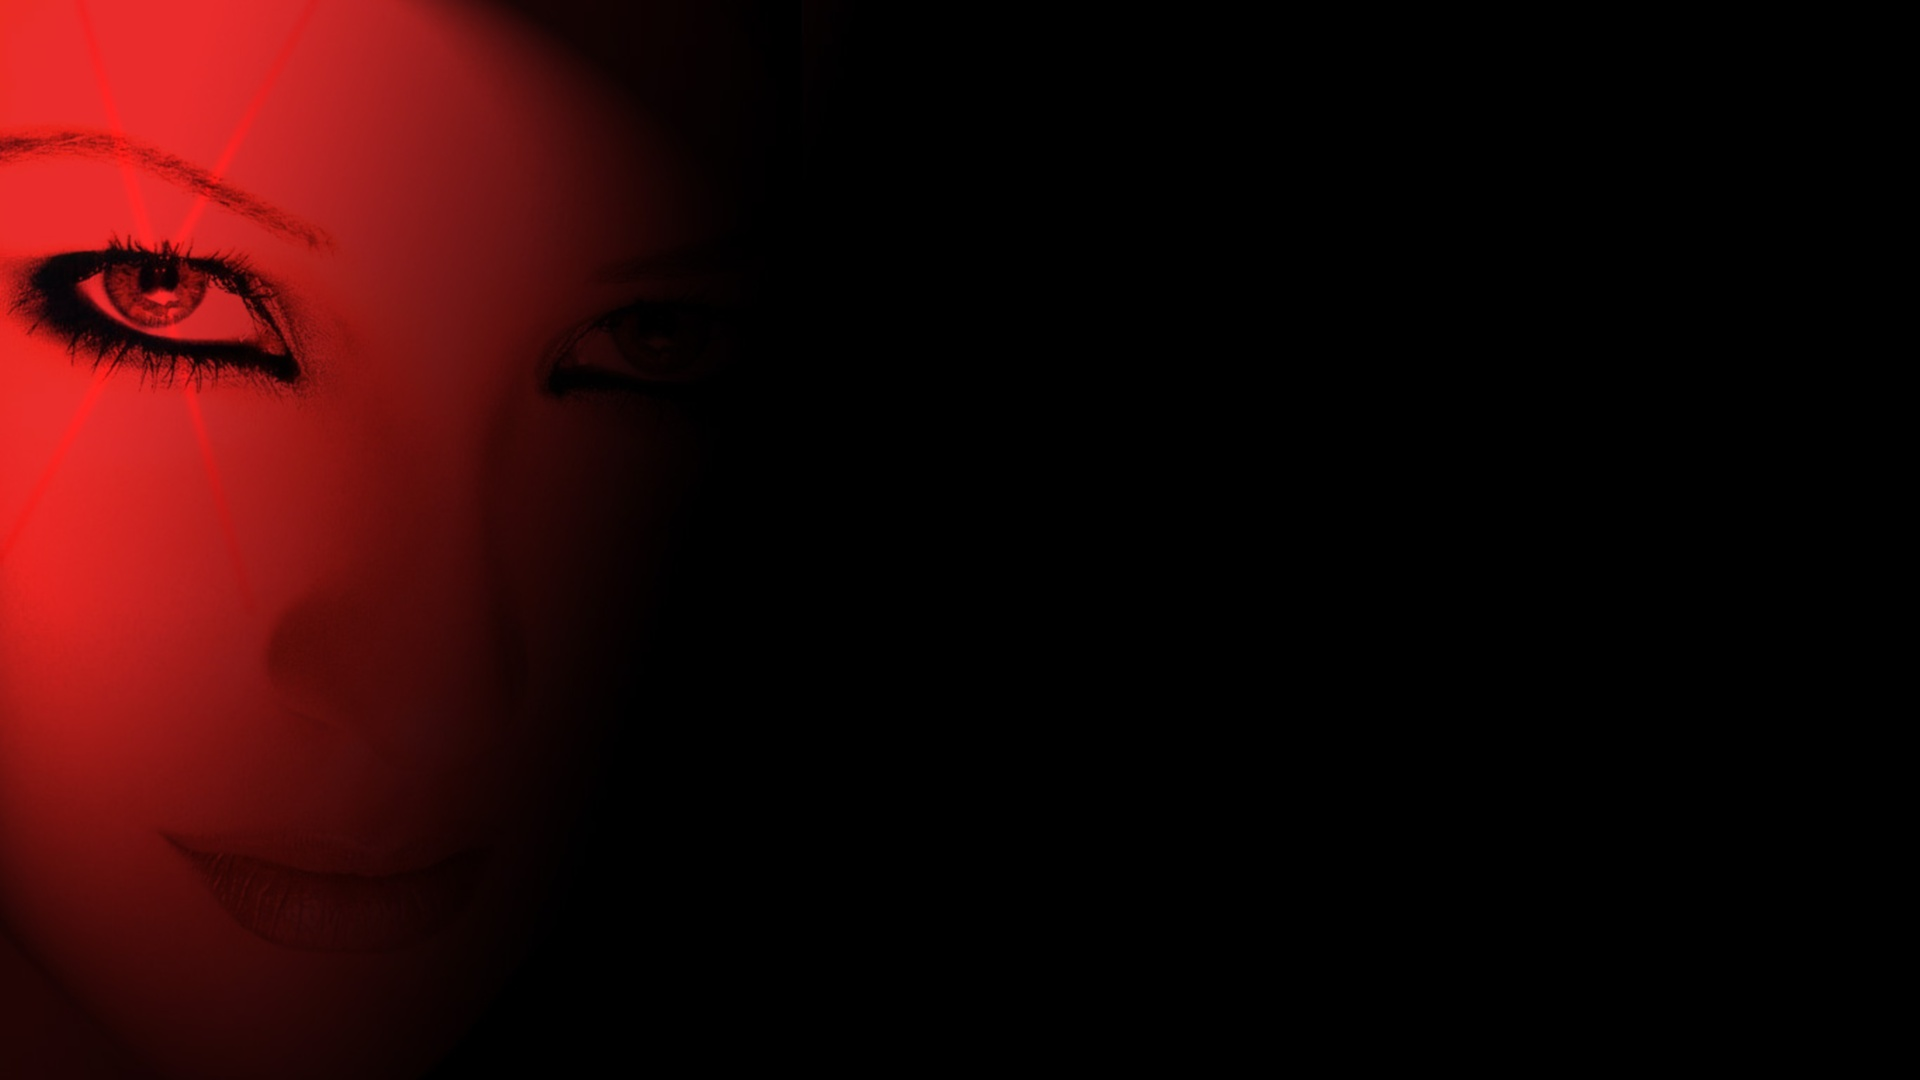 Black Red Wallpaper Hd 1080p Awesome Wallpapers